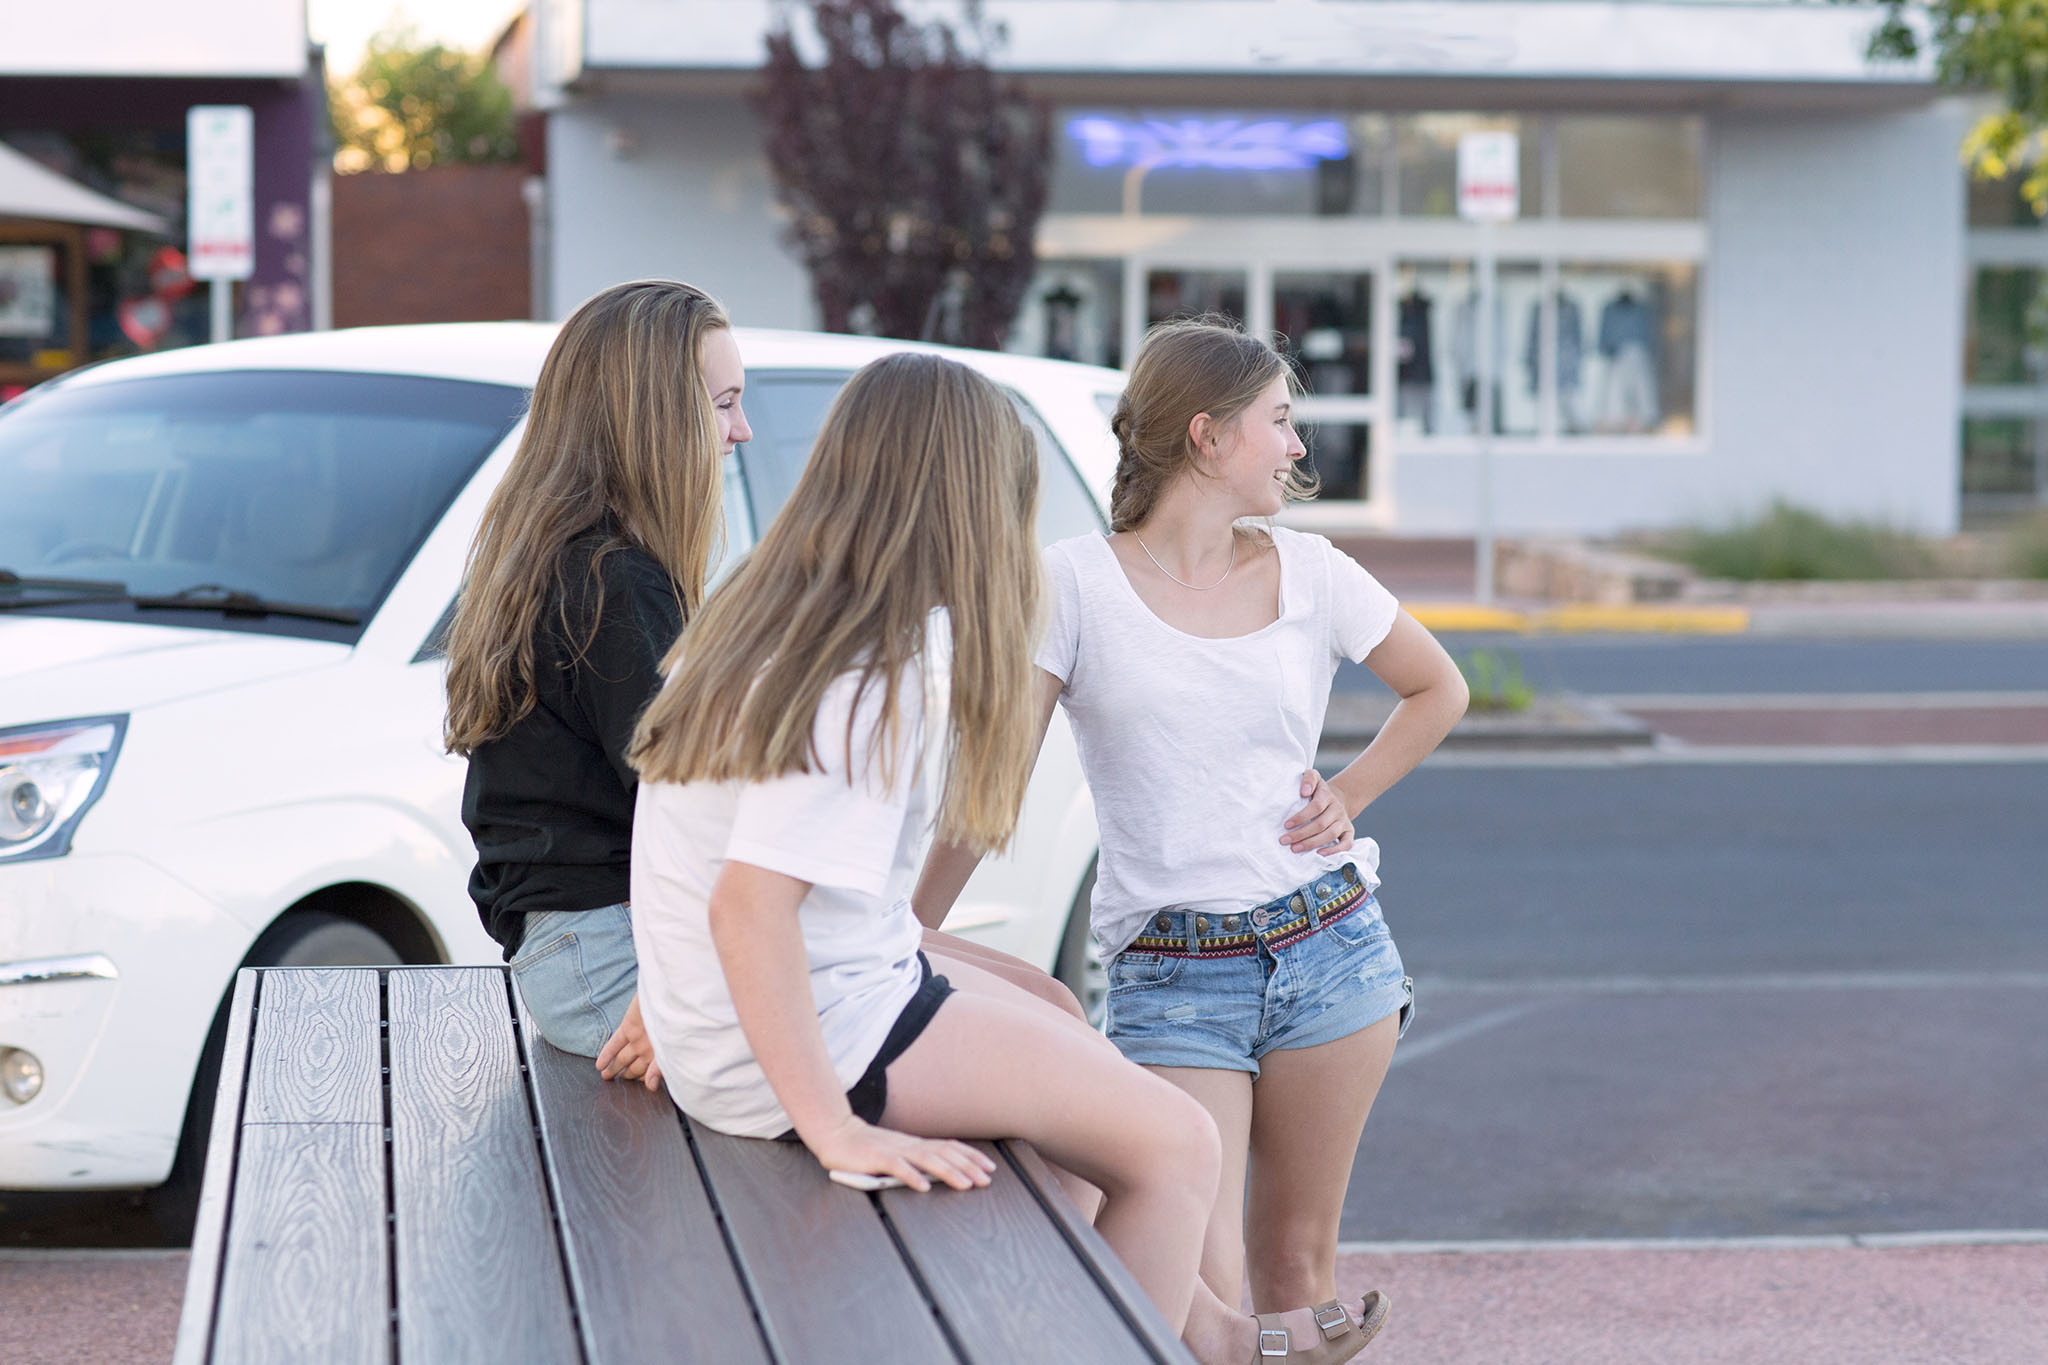 Stock photo of three teenage girls in the street, by caro telfer, photographer